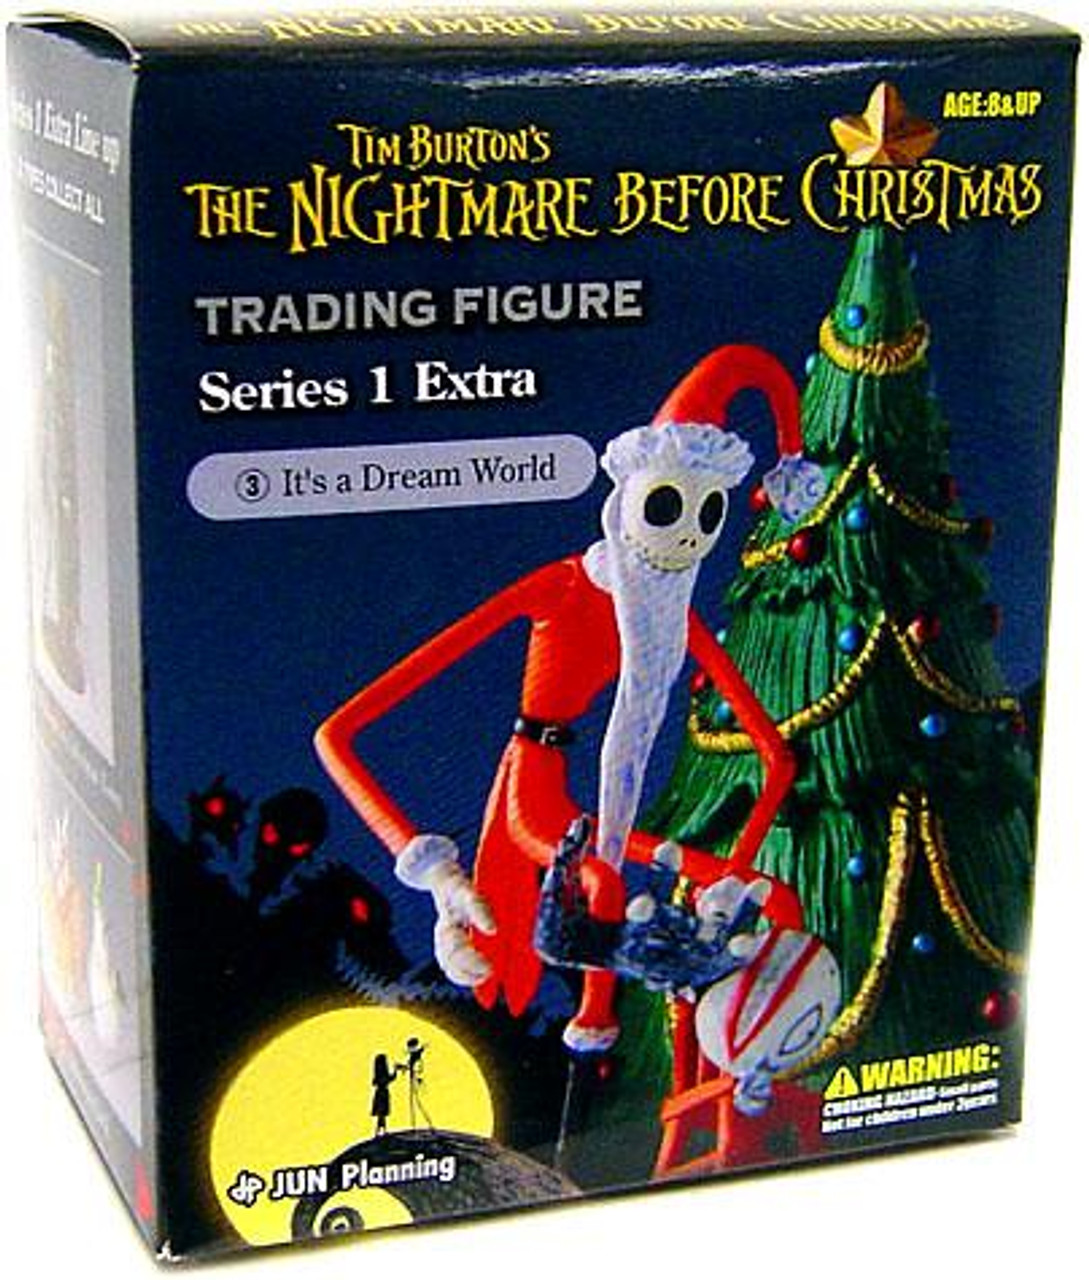 The Nightmare Before Christmas Series 1 Extra It's A Dream World Trading Figure #3